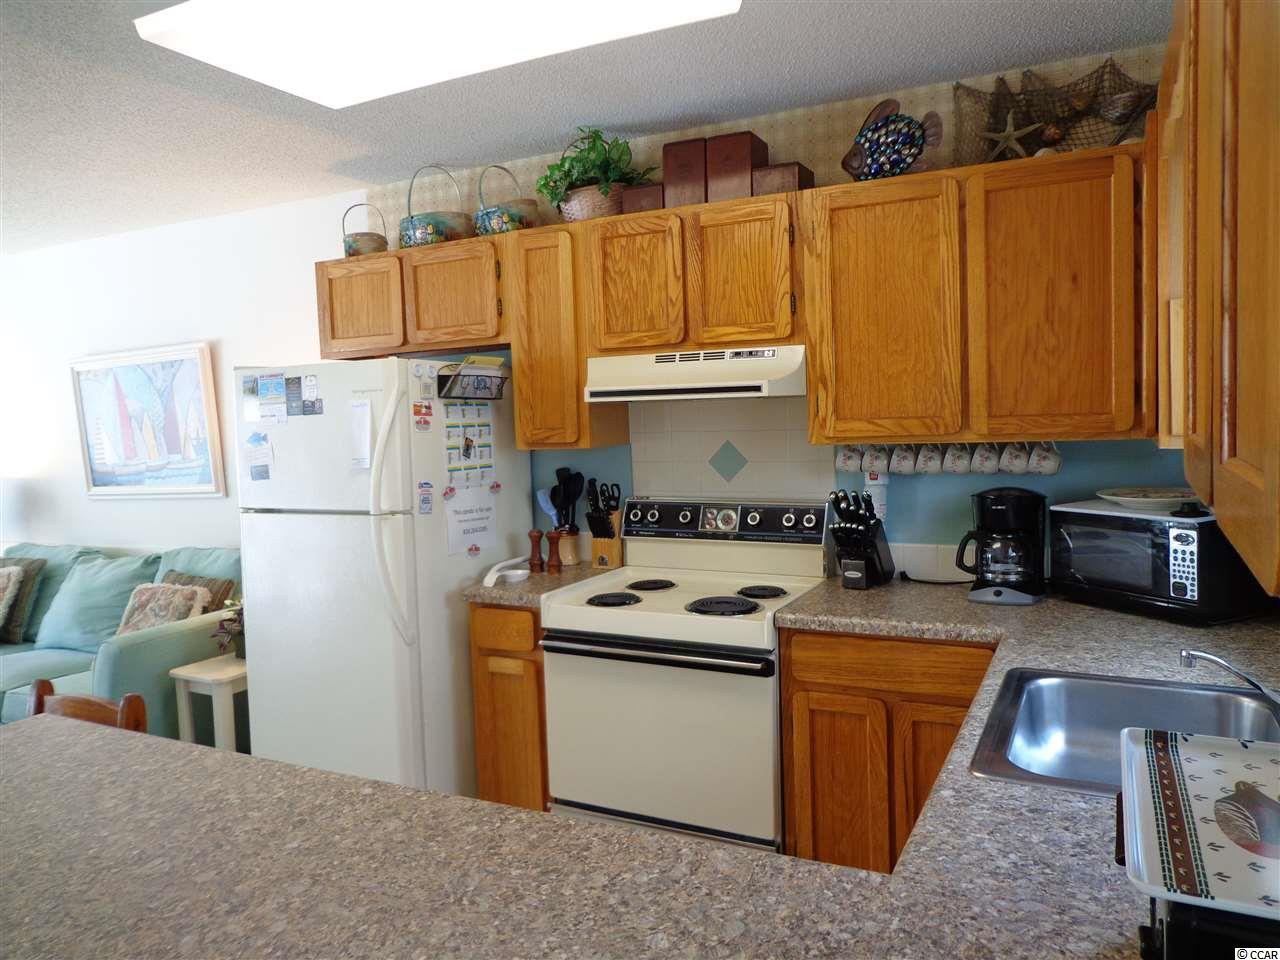 1 bedroom  Starboard by the Sea condo for sale